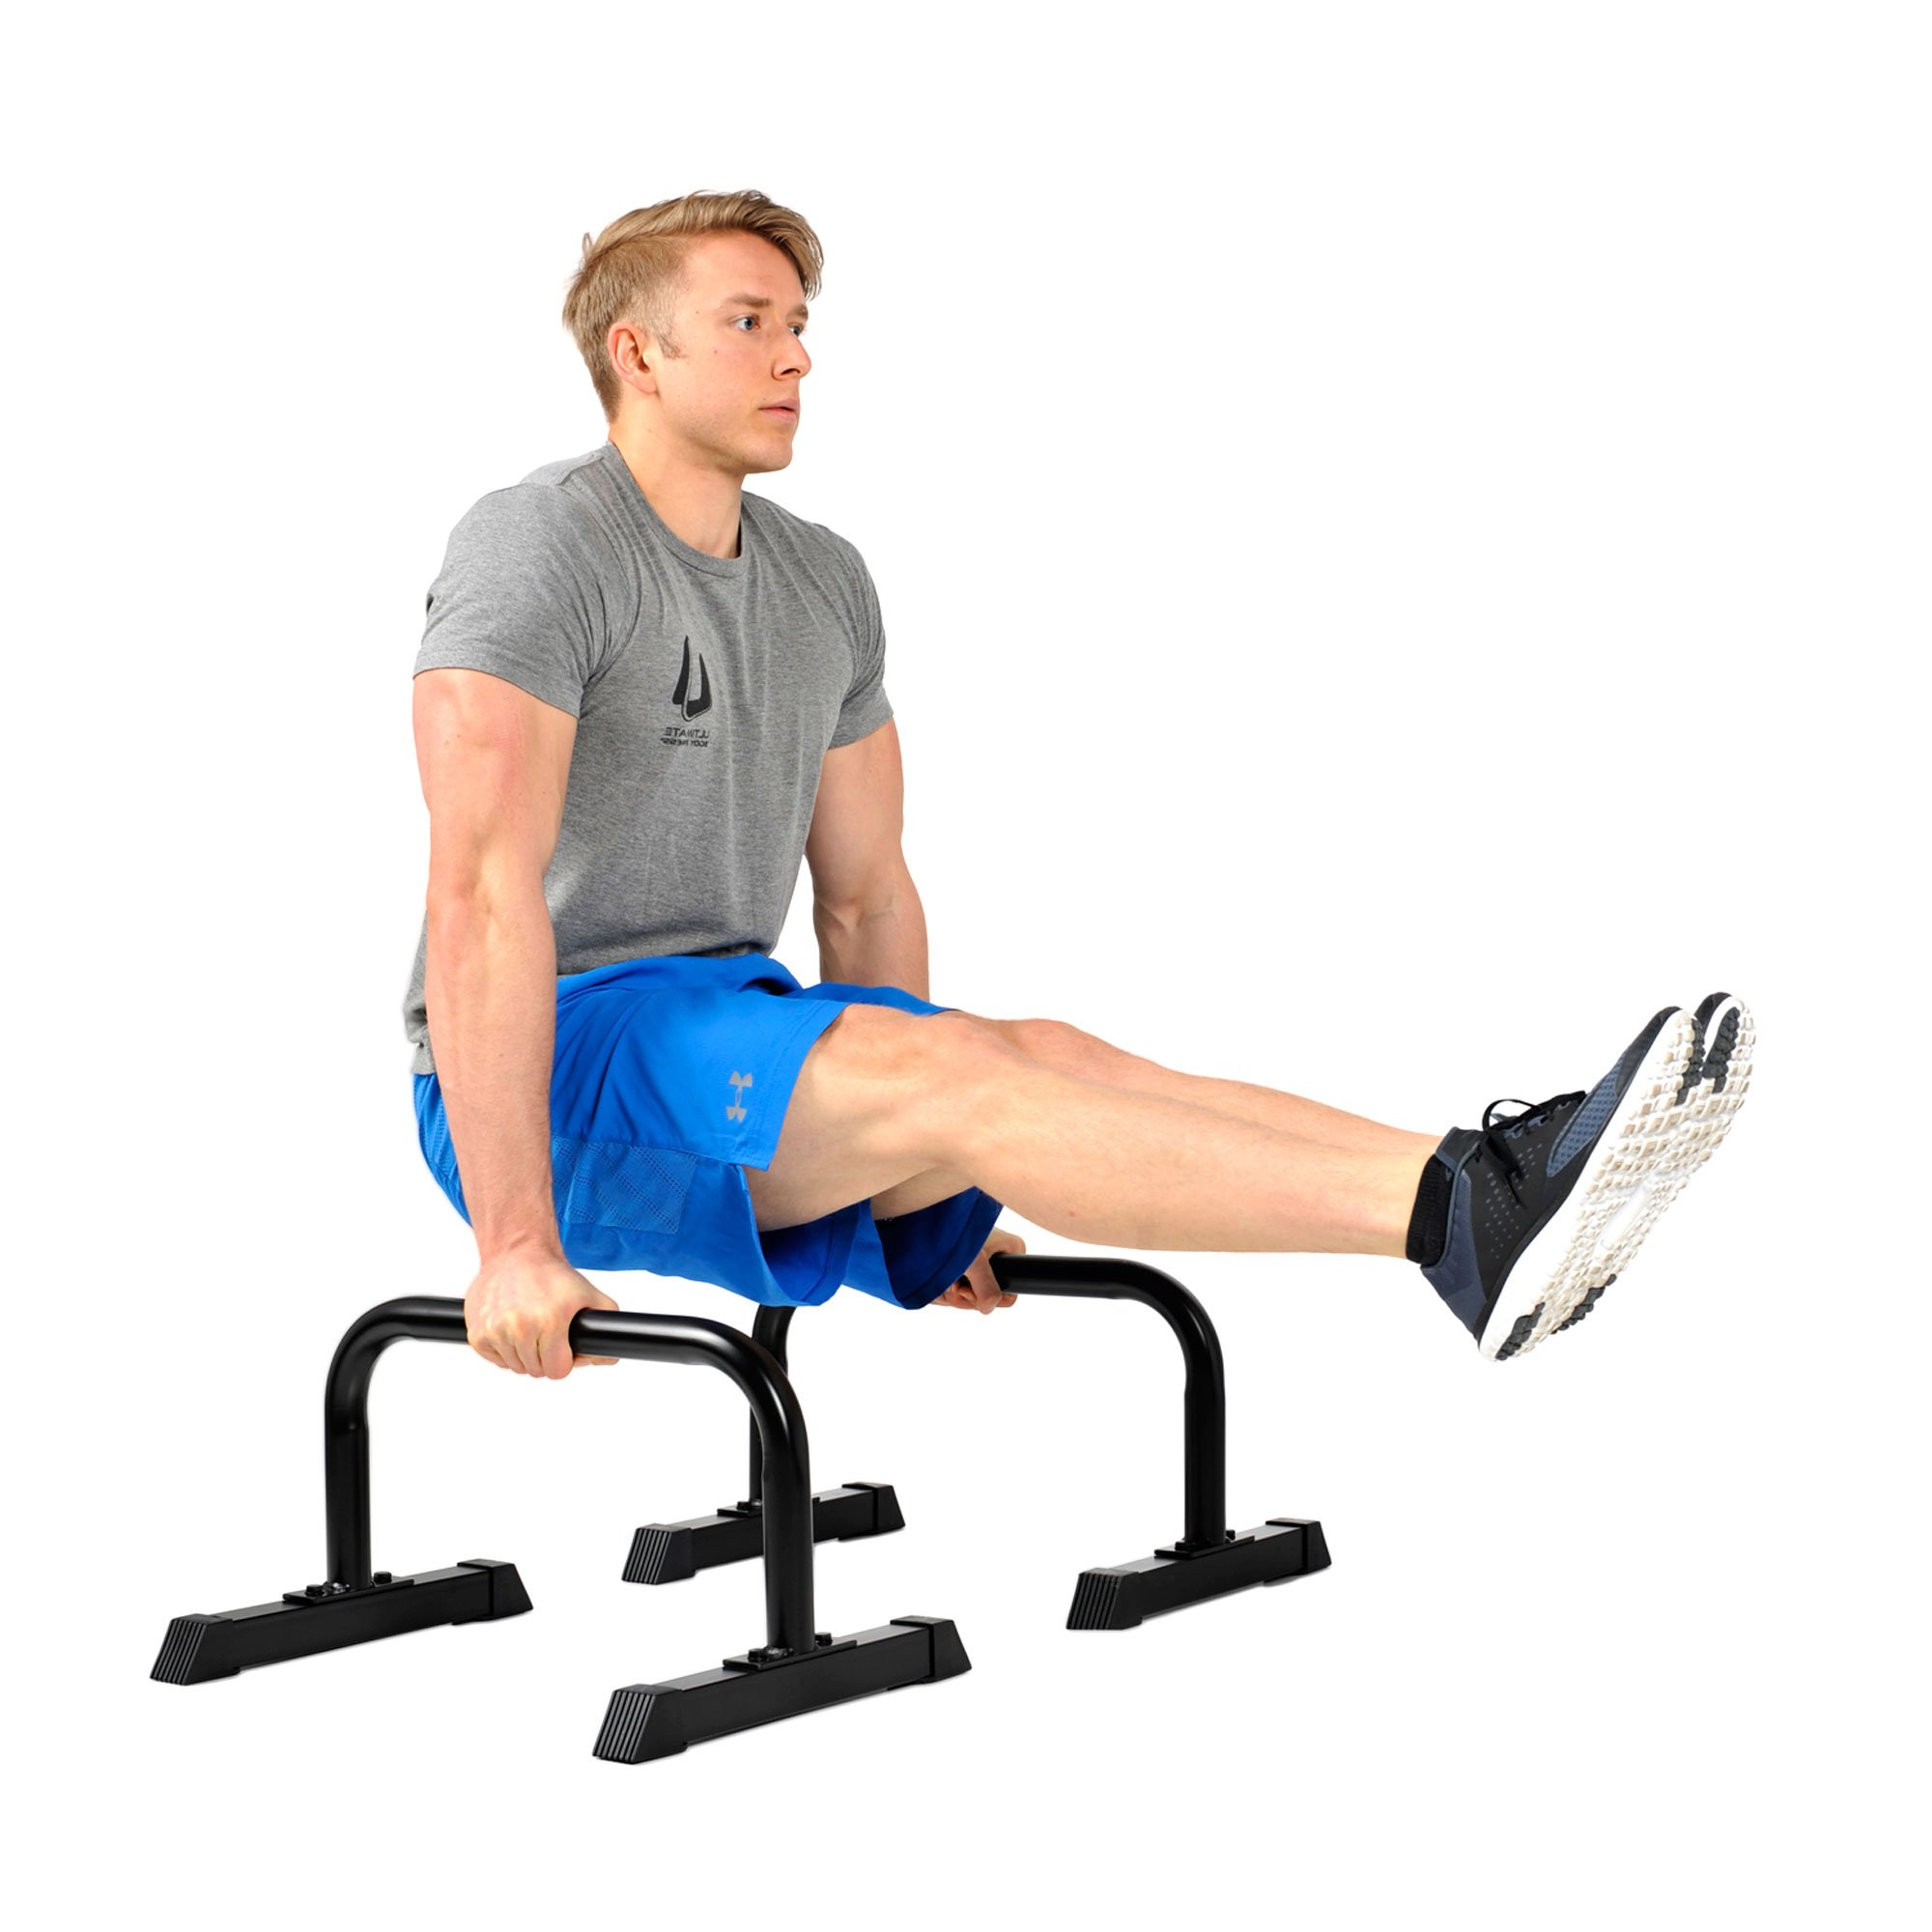 Ultimate Body Press Parallettes XL Push Up Stands 12x24 inch by Ultimate Body Press